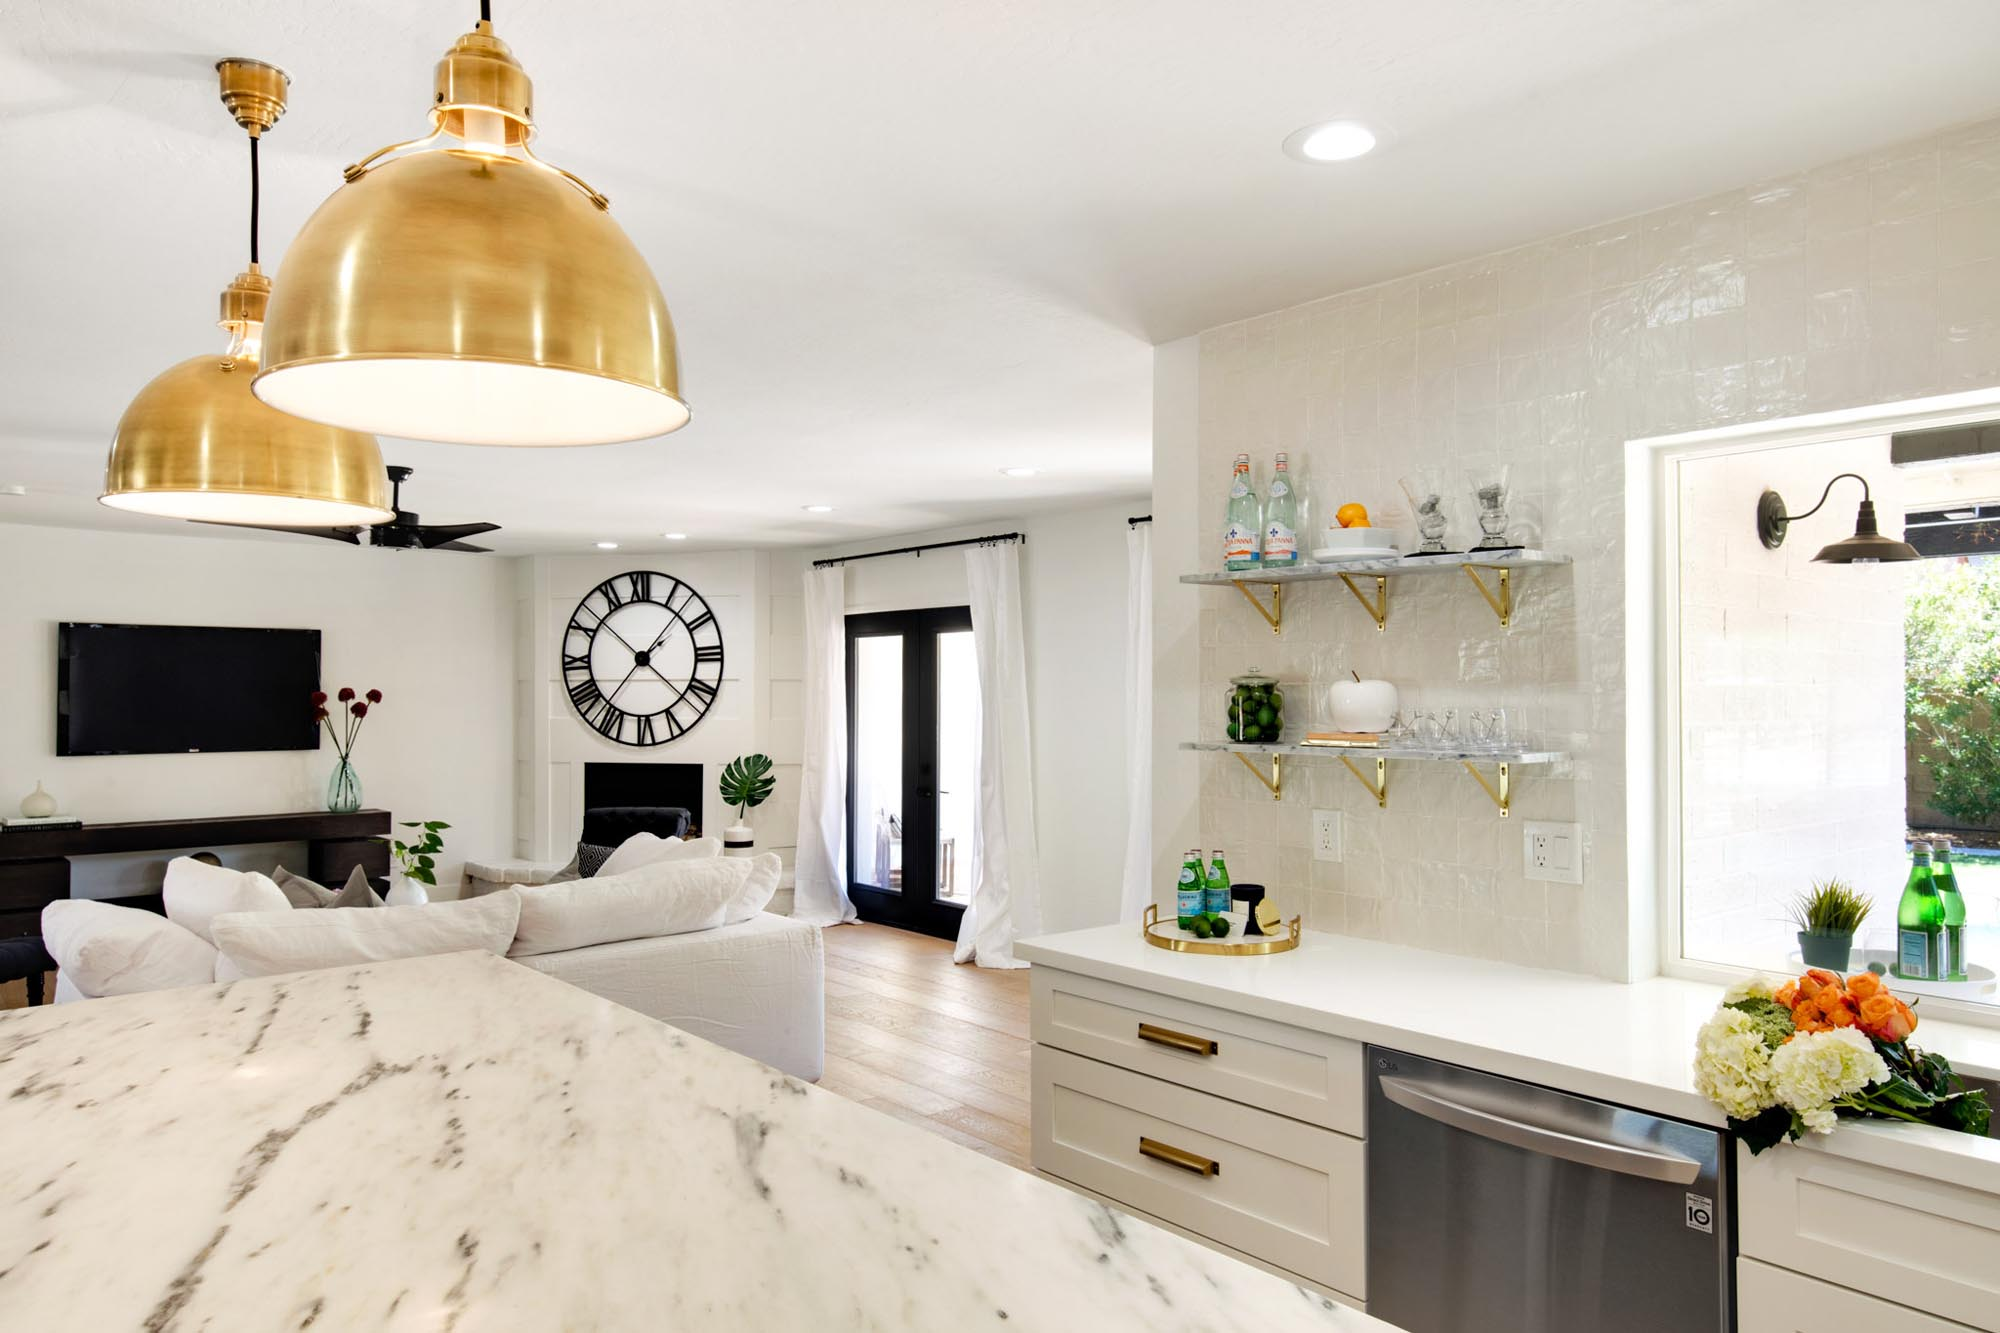 Kitchen with stylish gold hanging lights